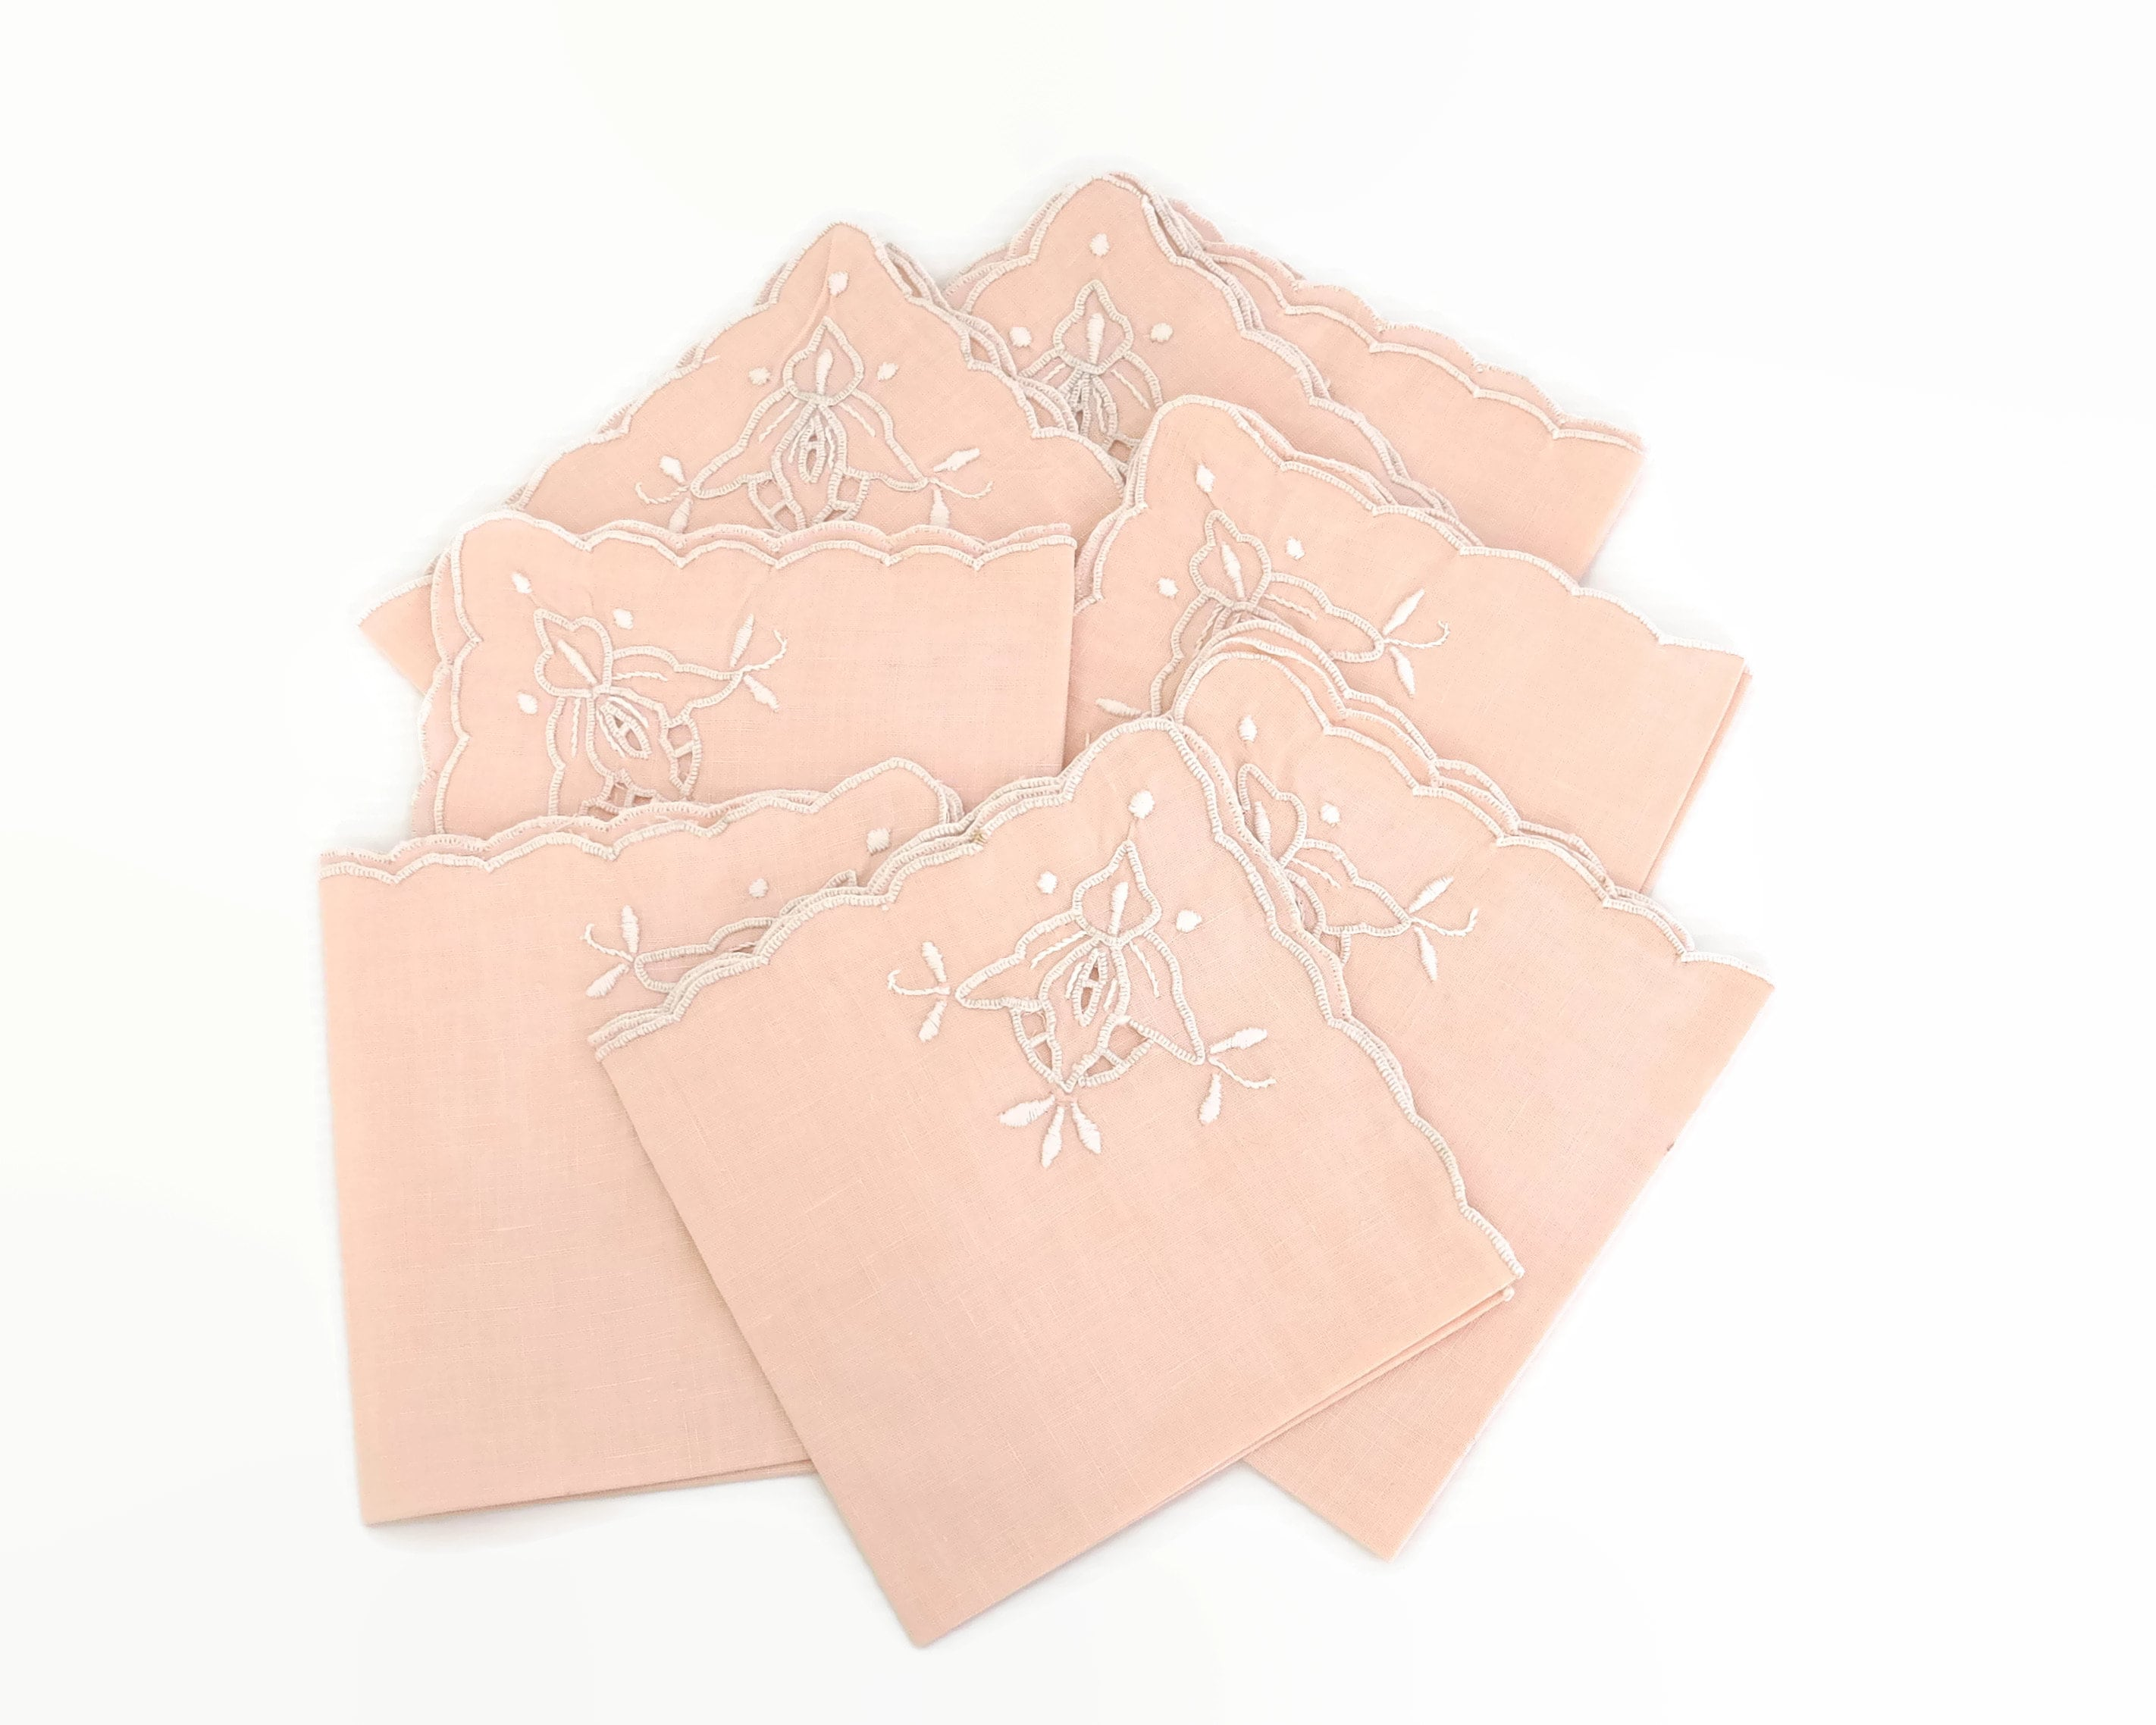 8 Vintage Salmon Pink Linen Embroidered Napkins Scalloped Edge Floral Embroidery 10 5 Inches 26 5cm Square